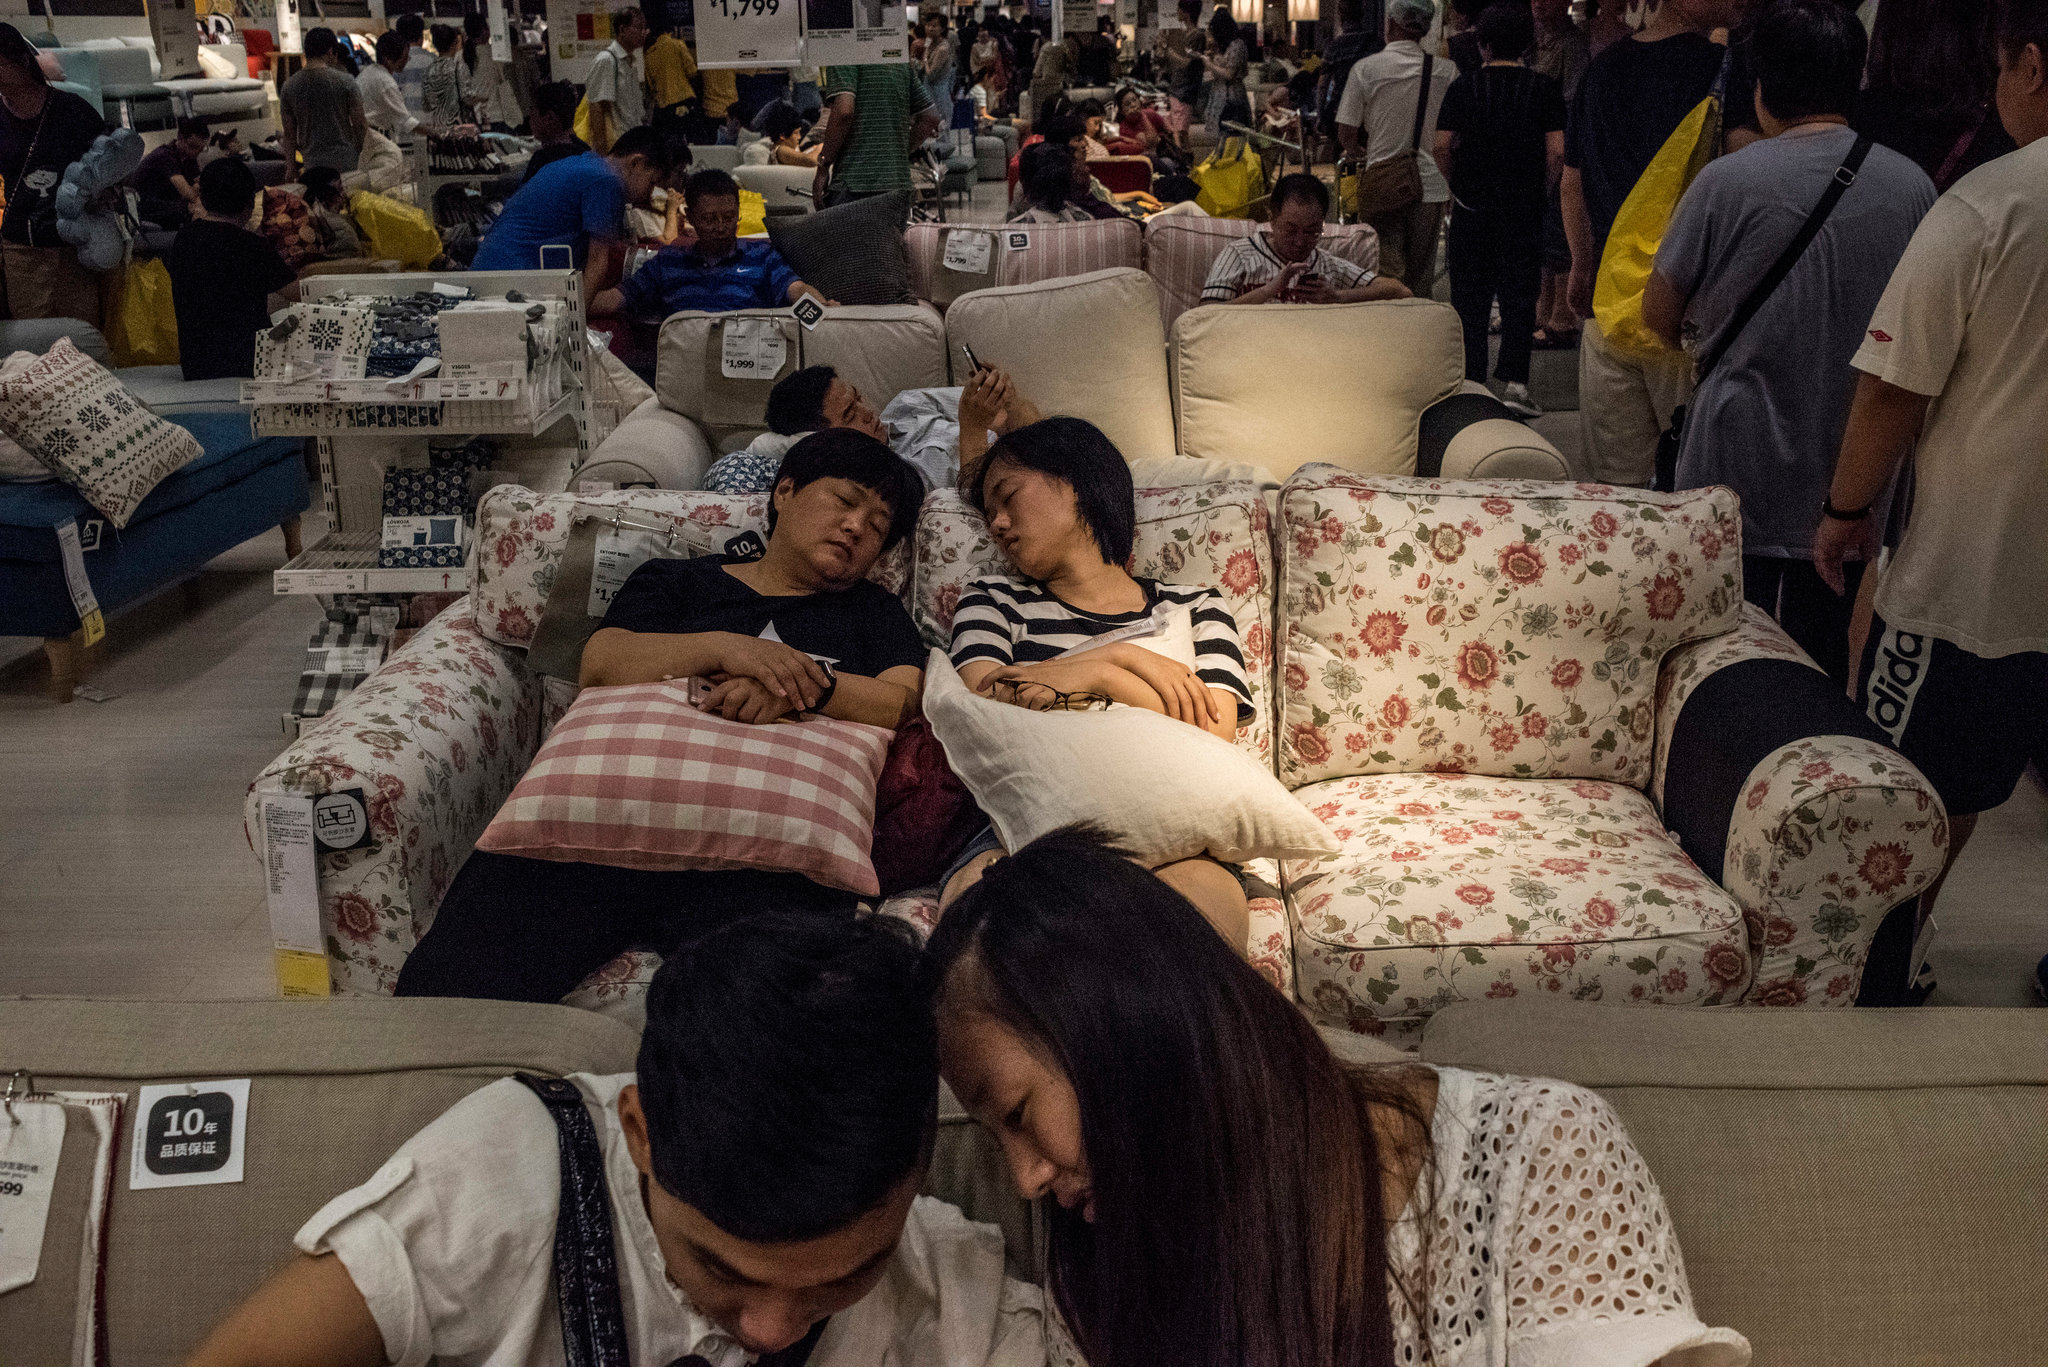 kitchen cabinets ikea new sink cost shh. it's naptime at in china. - the york times